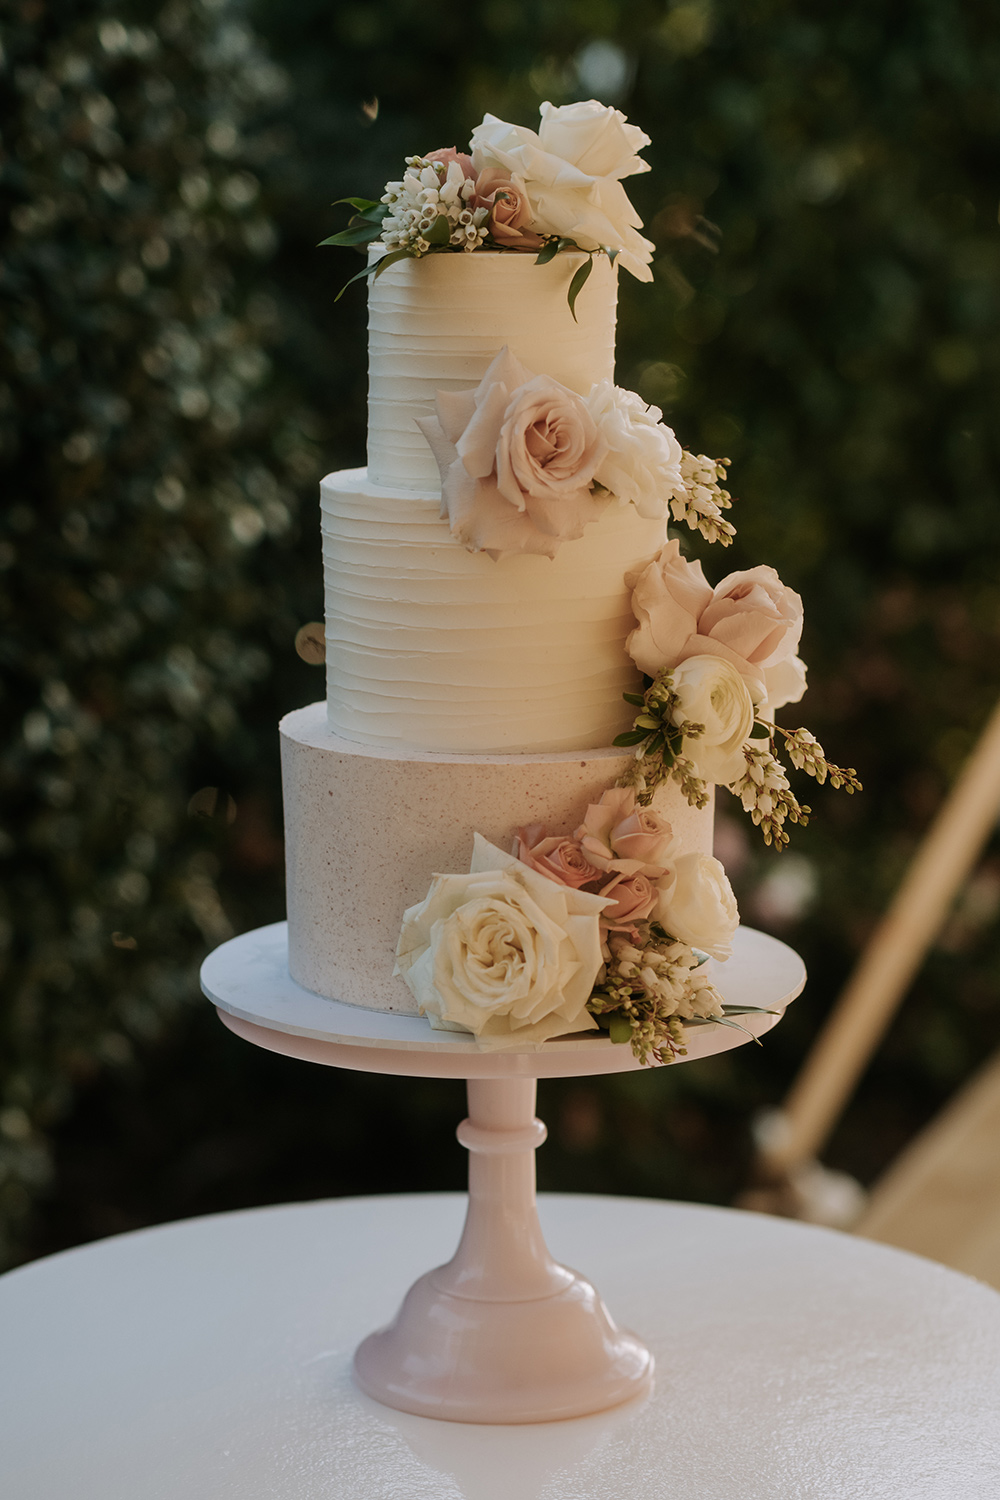 Wedding cake floral featuring including roses